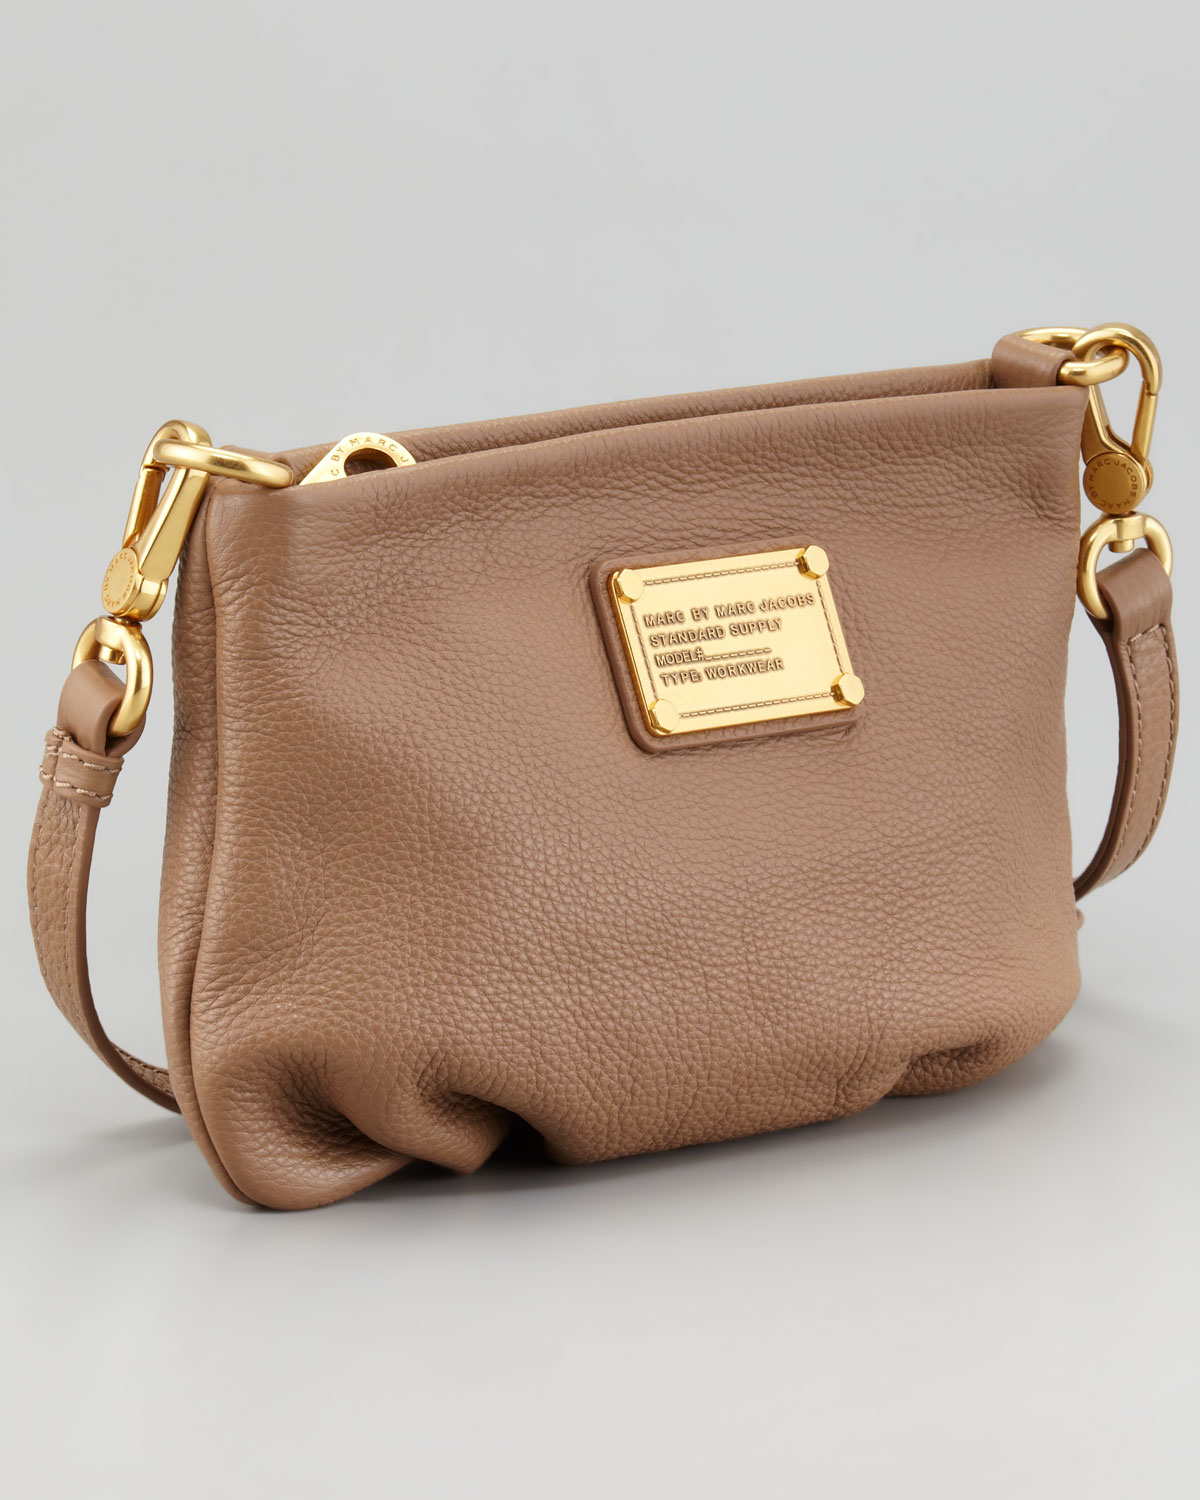 c41649555 Marc By Marc Jacobs Classic Q Percy Cross-body Bag in Brown - Lyst